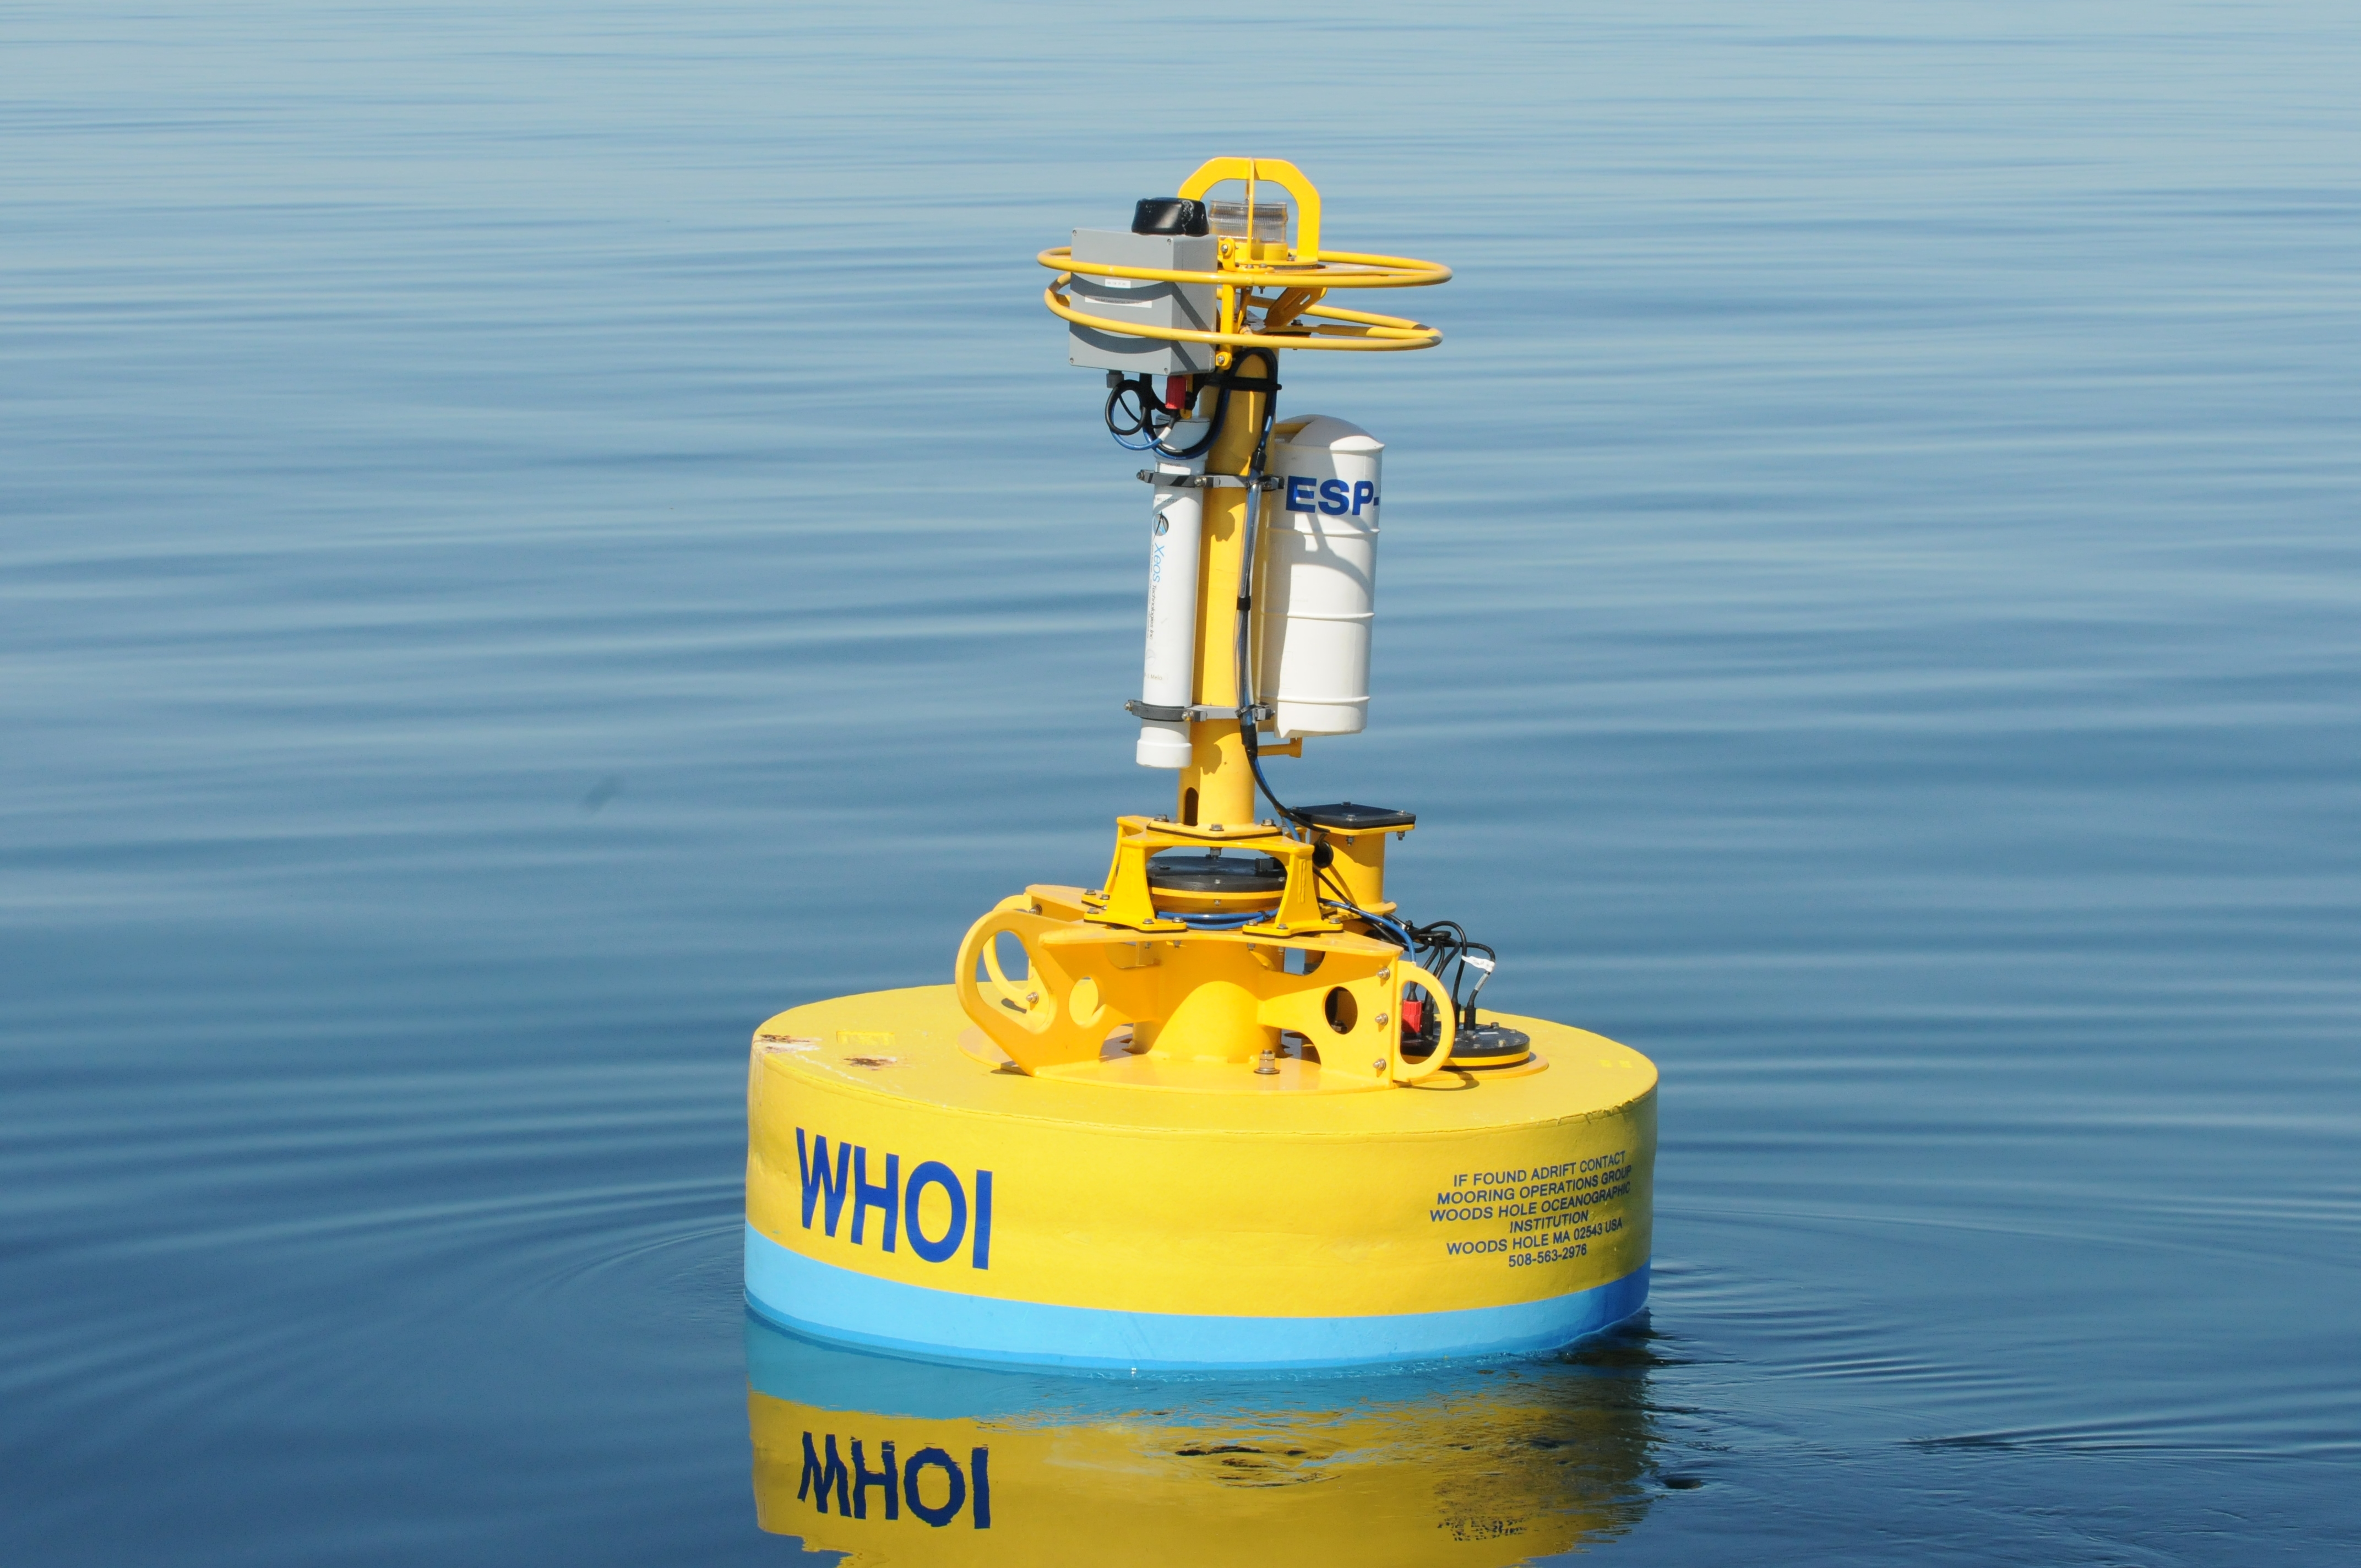 woods holeoceanographic institution buoy in bay of fundy